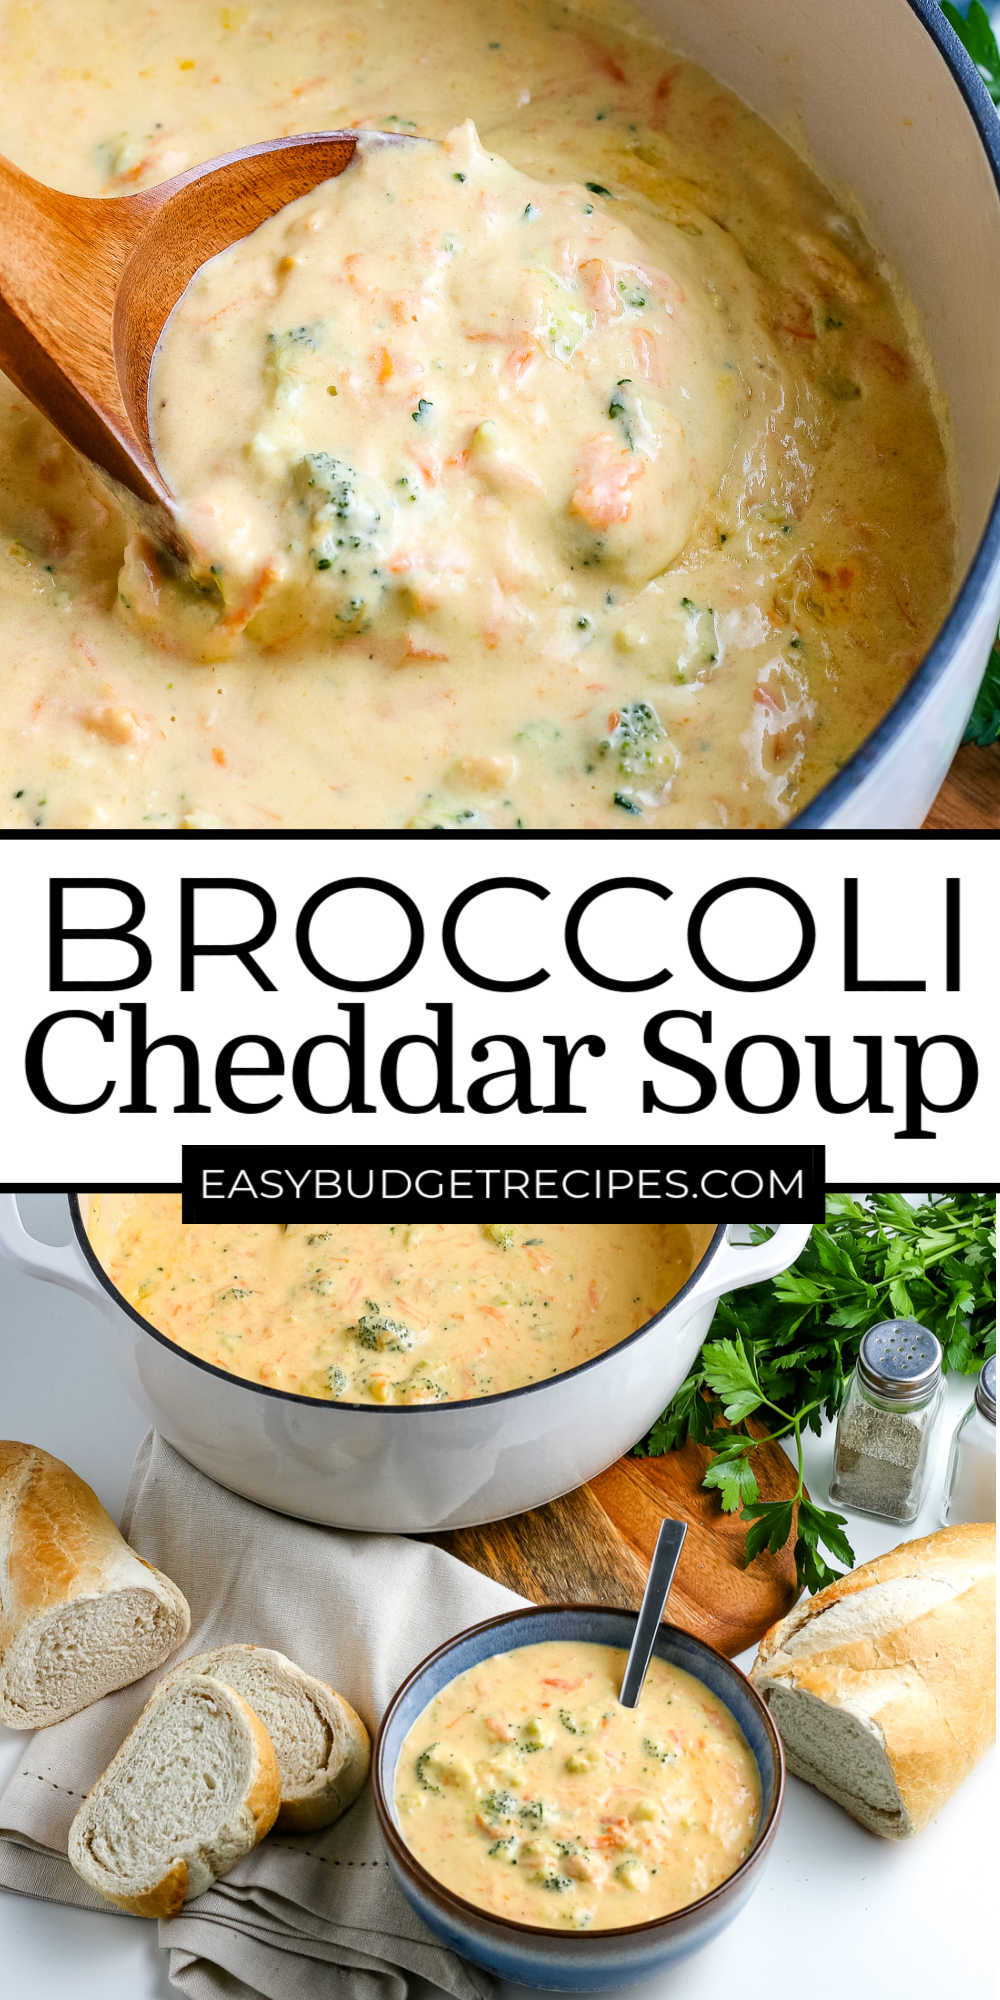 Broccoli Cheddar Soup is a classic soup that is great any time of the year. It's velvety-smooth, creamy, cheesy, and full of perfectly cooked broccoli and carrots.  via @easybudgetrecipes